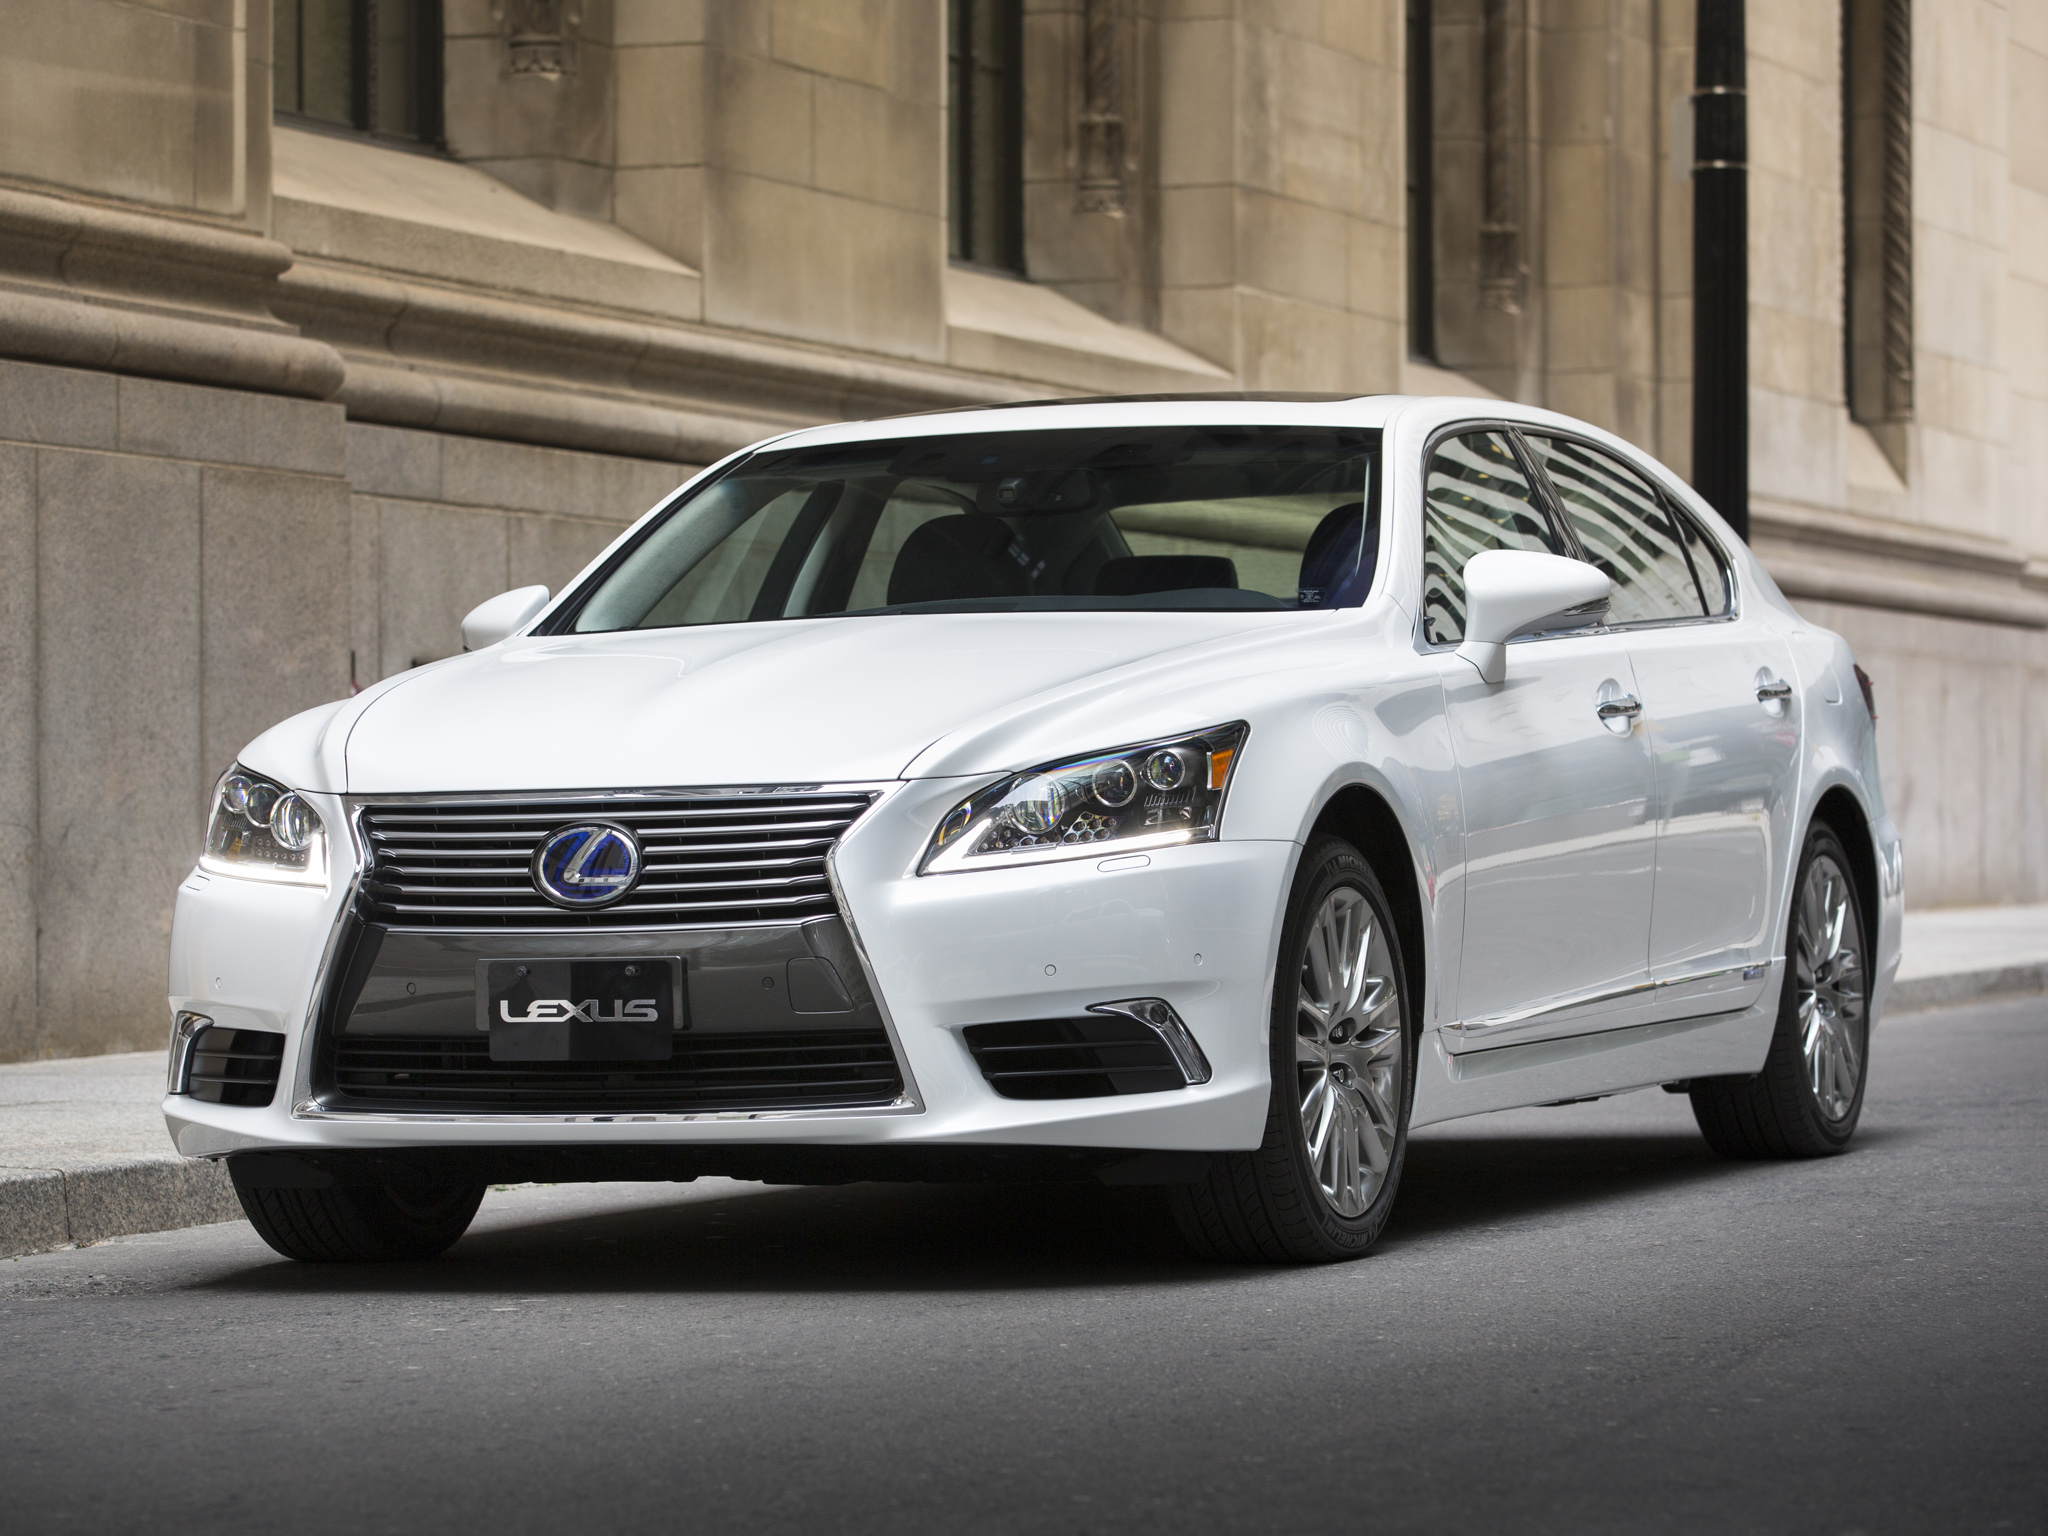 2019 Lexus LS 600h L photo - 2